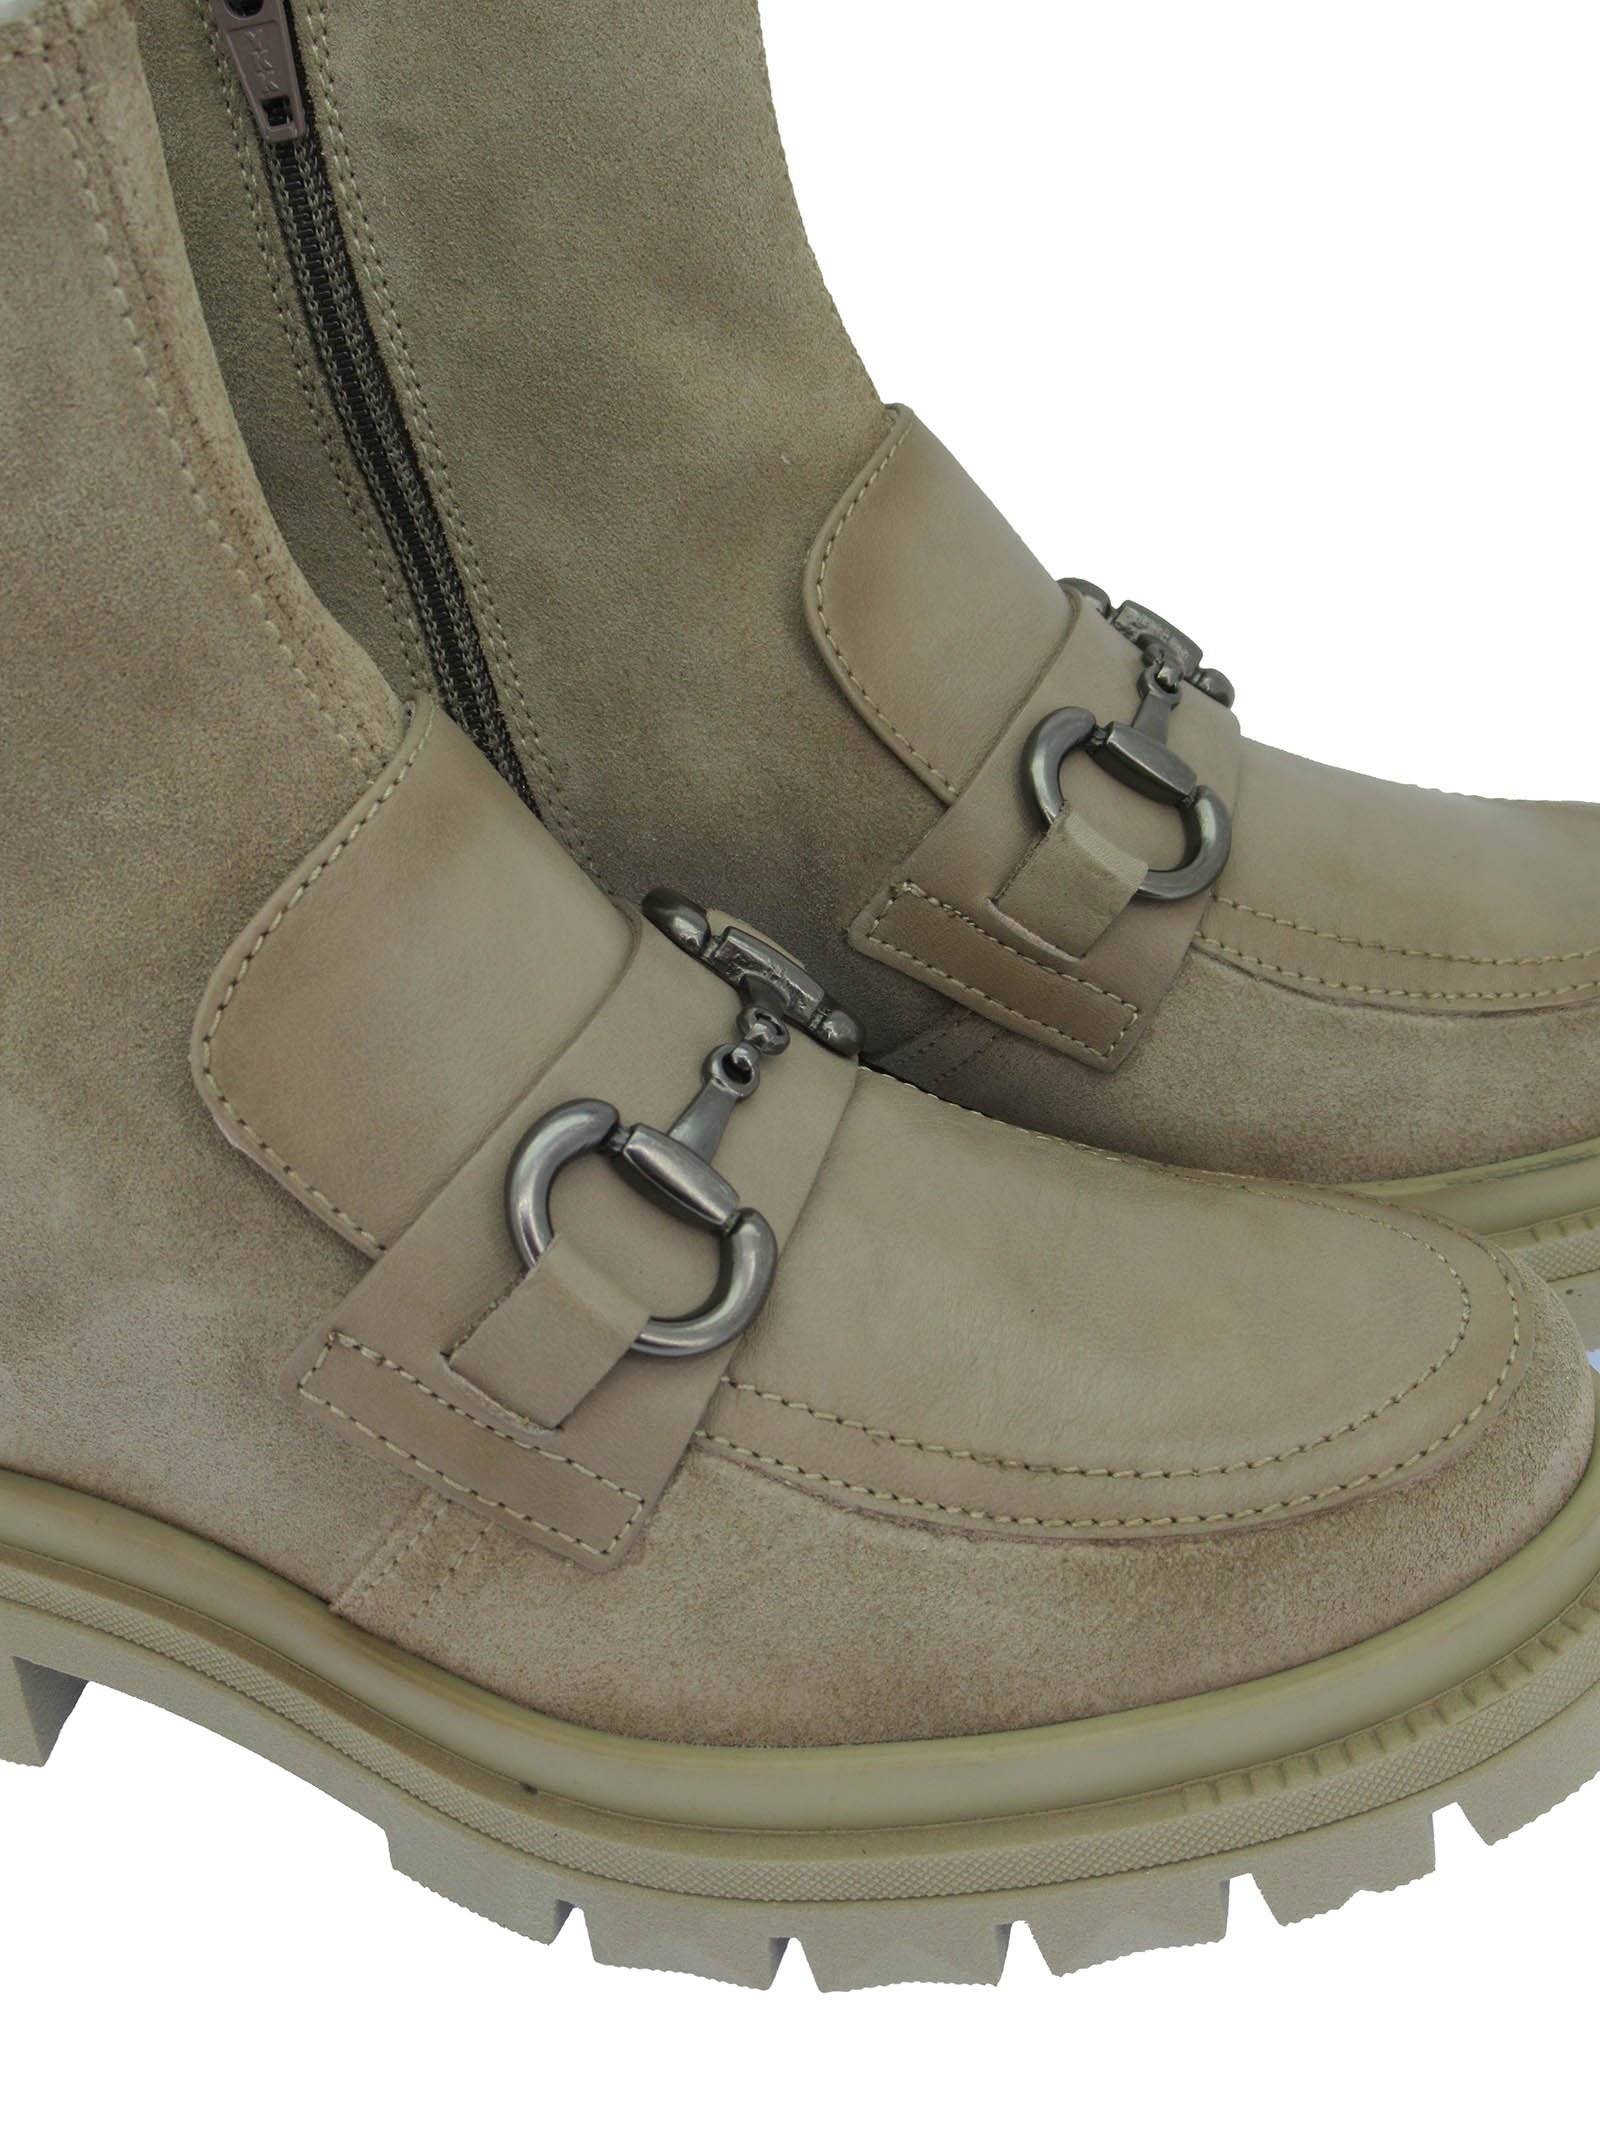 Women's Shoes Ankle Boots Alison in Beige Leather and Suede with Burnished Accessory and Rubber Wedge Hispanitas | Ankle Boots | HI211892015